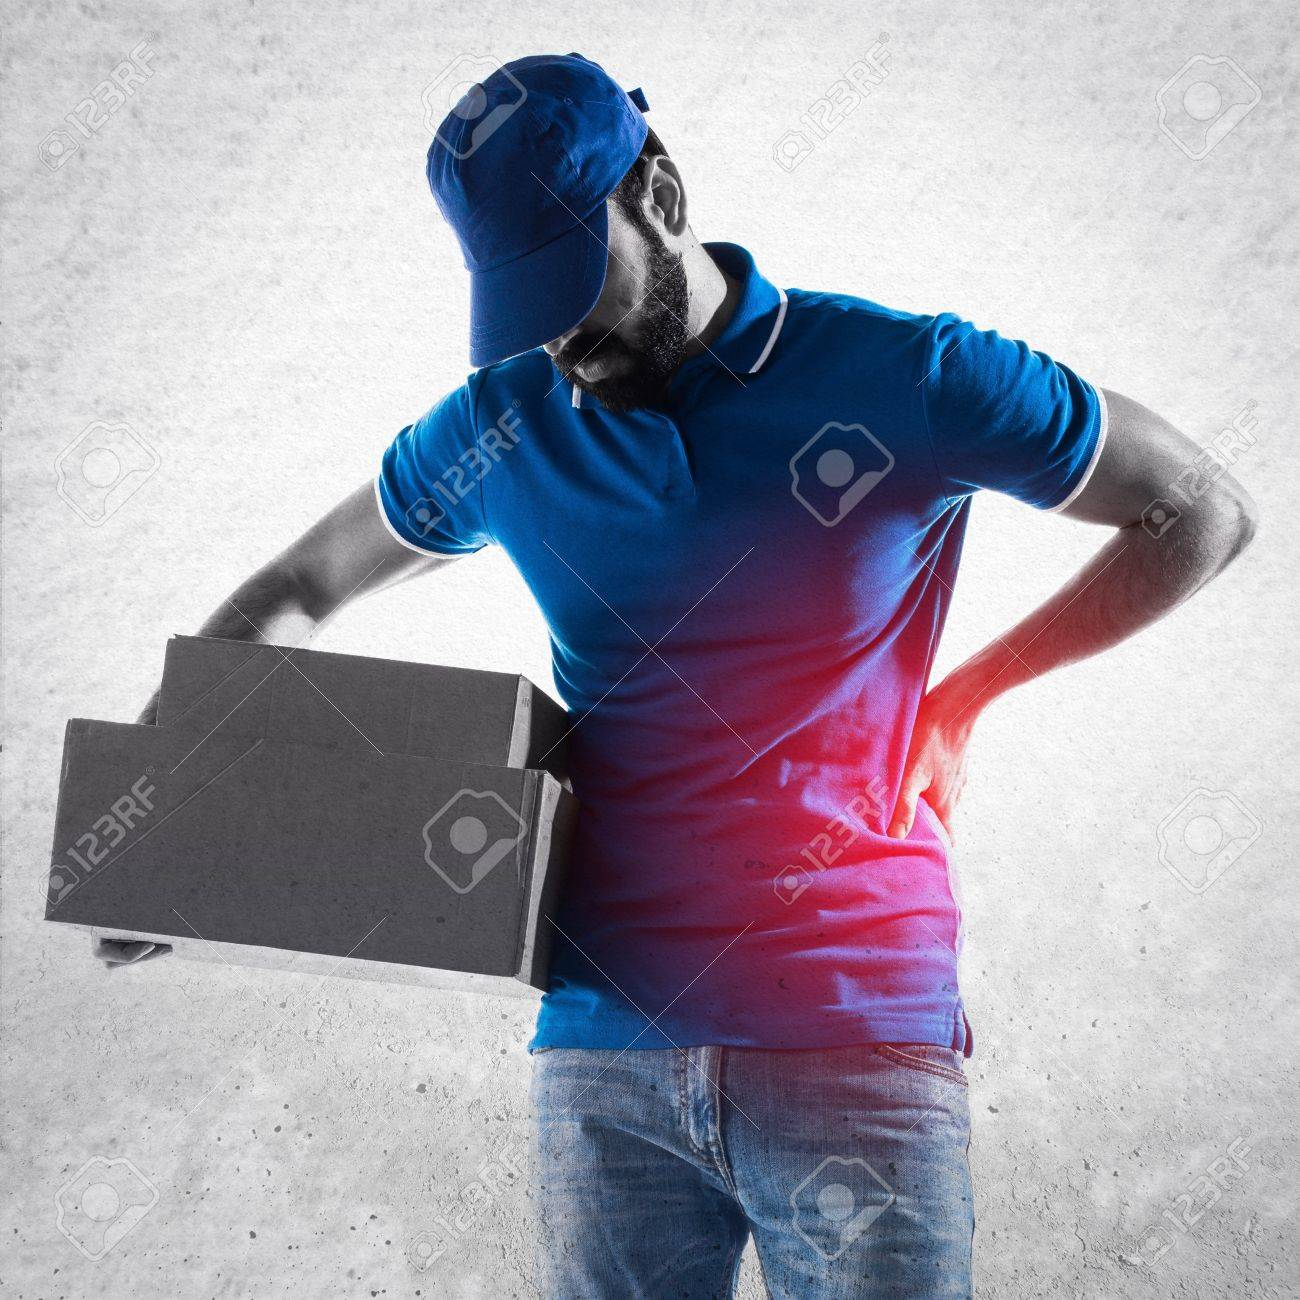 Delivery man with back pain Stock Photo - 55444457